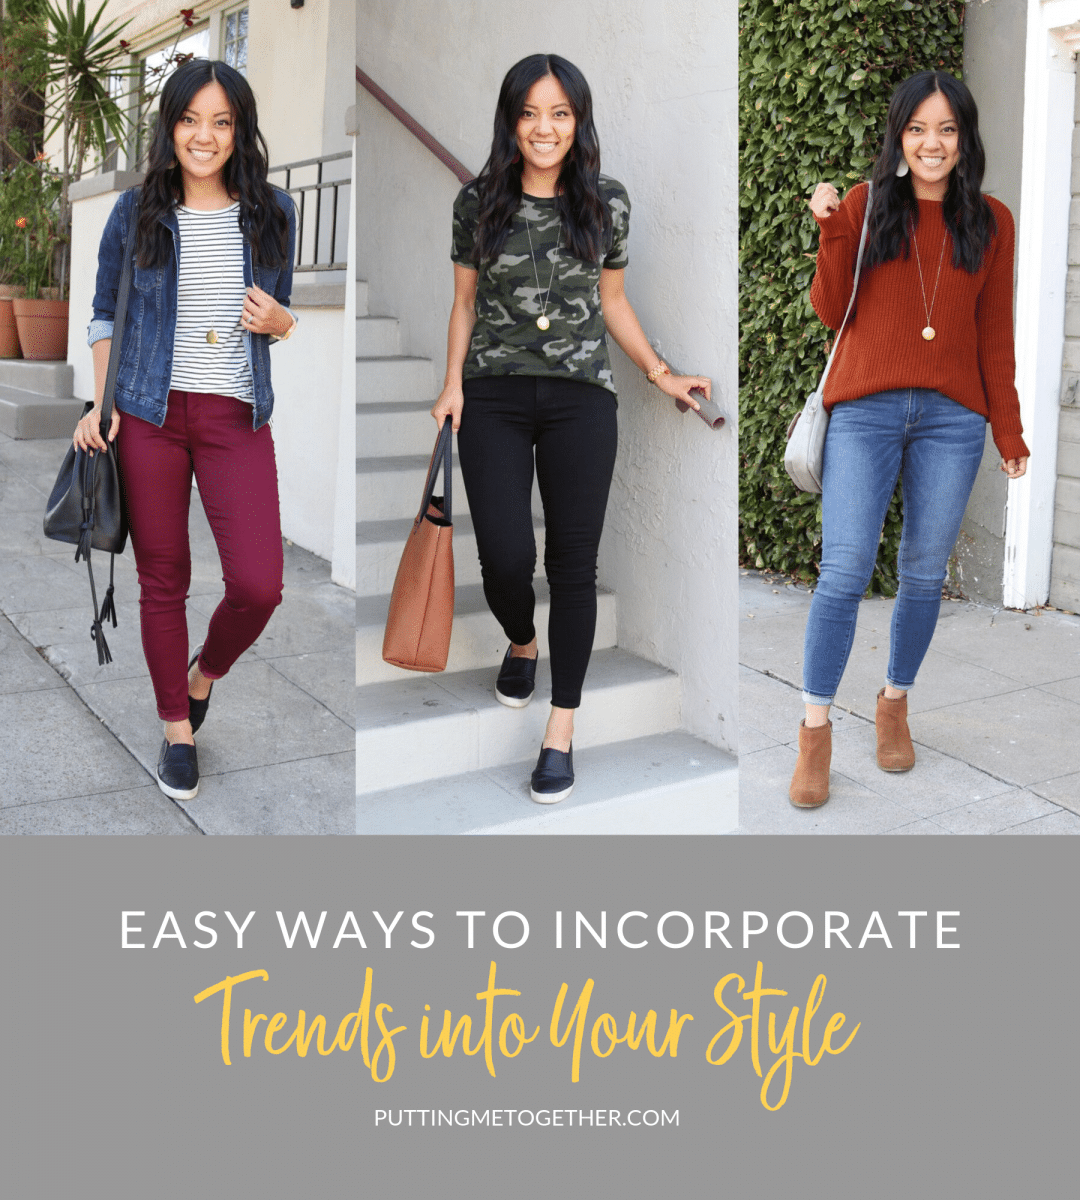 3 Smart Ways to Incorporate Trends into Your Style